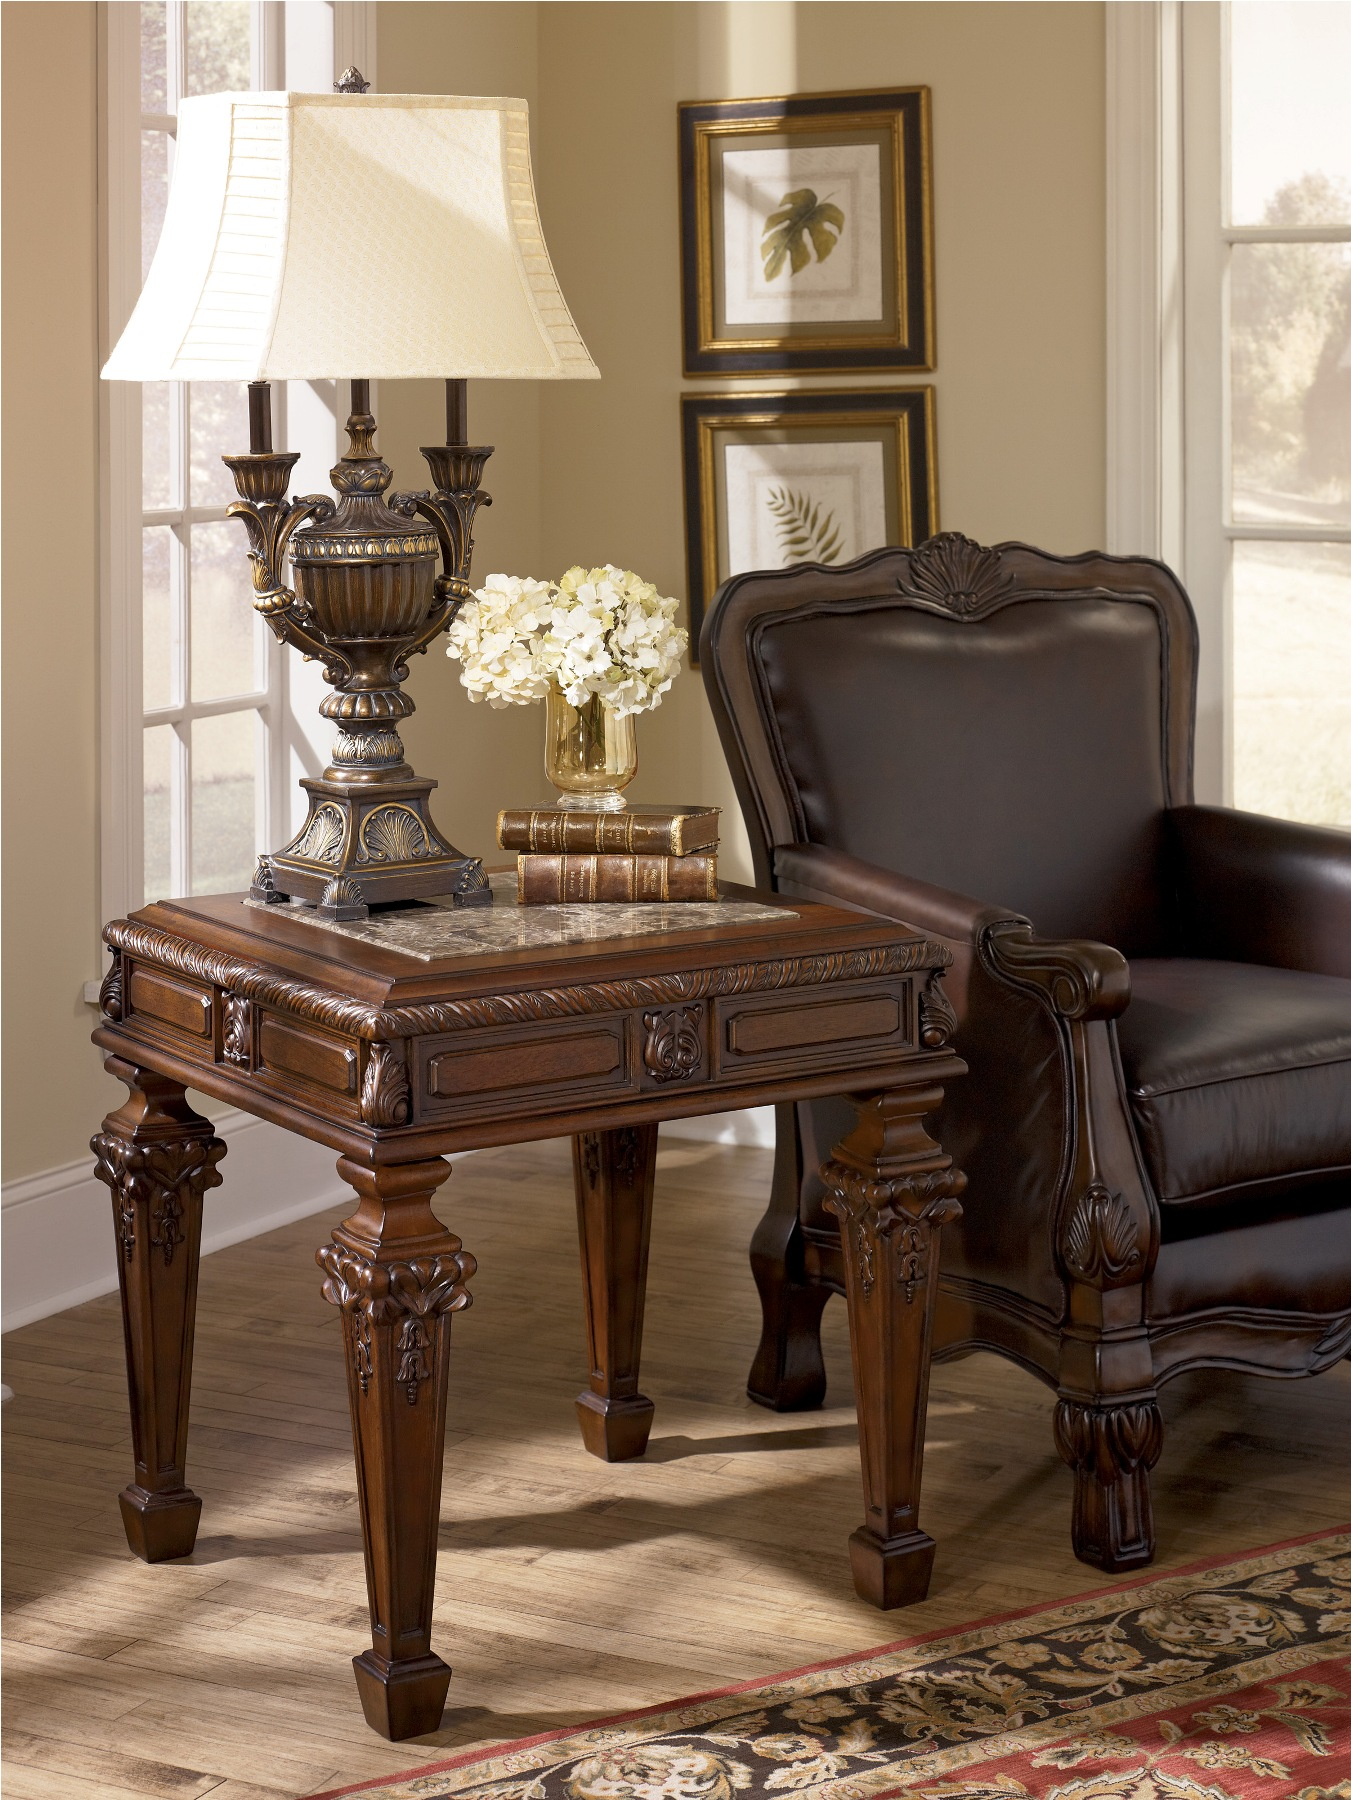 Furniture > Living Room Furniture > End Table > Old World End Table